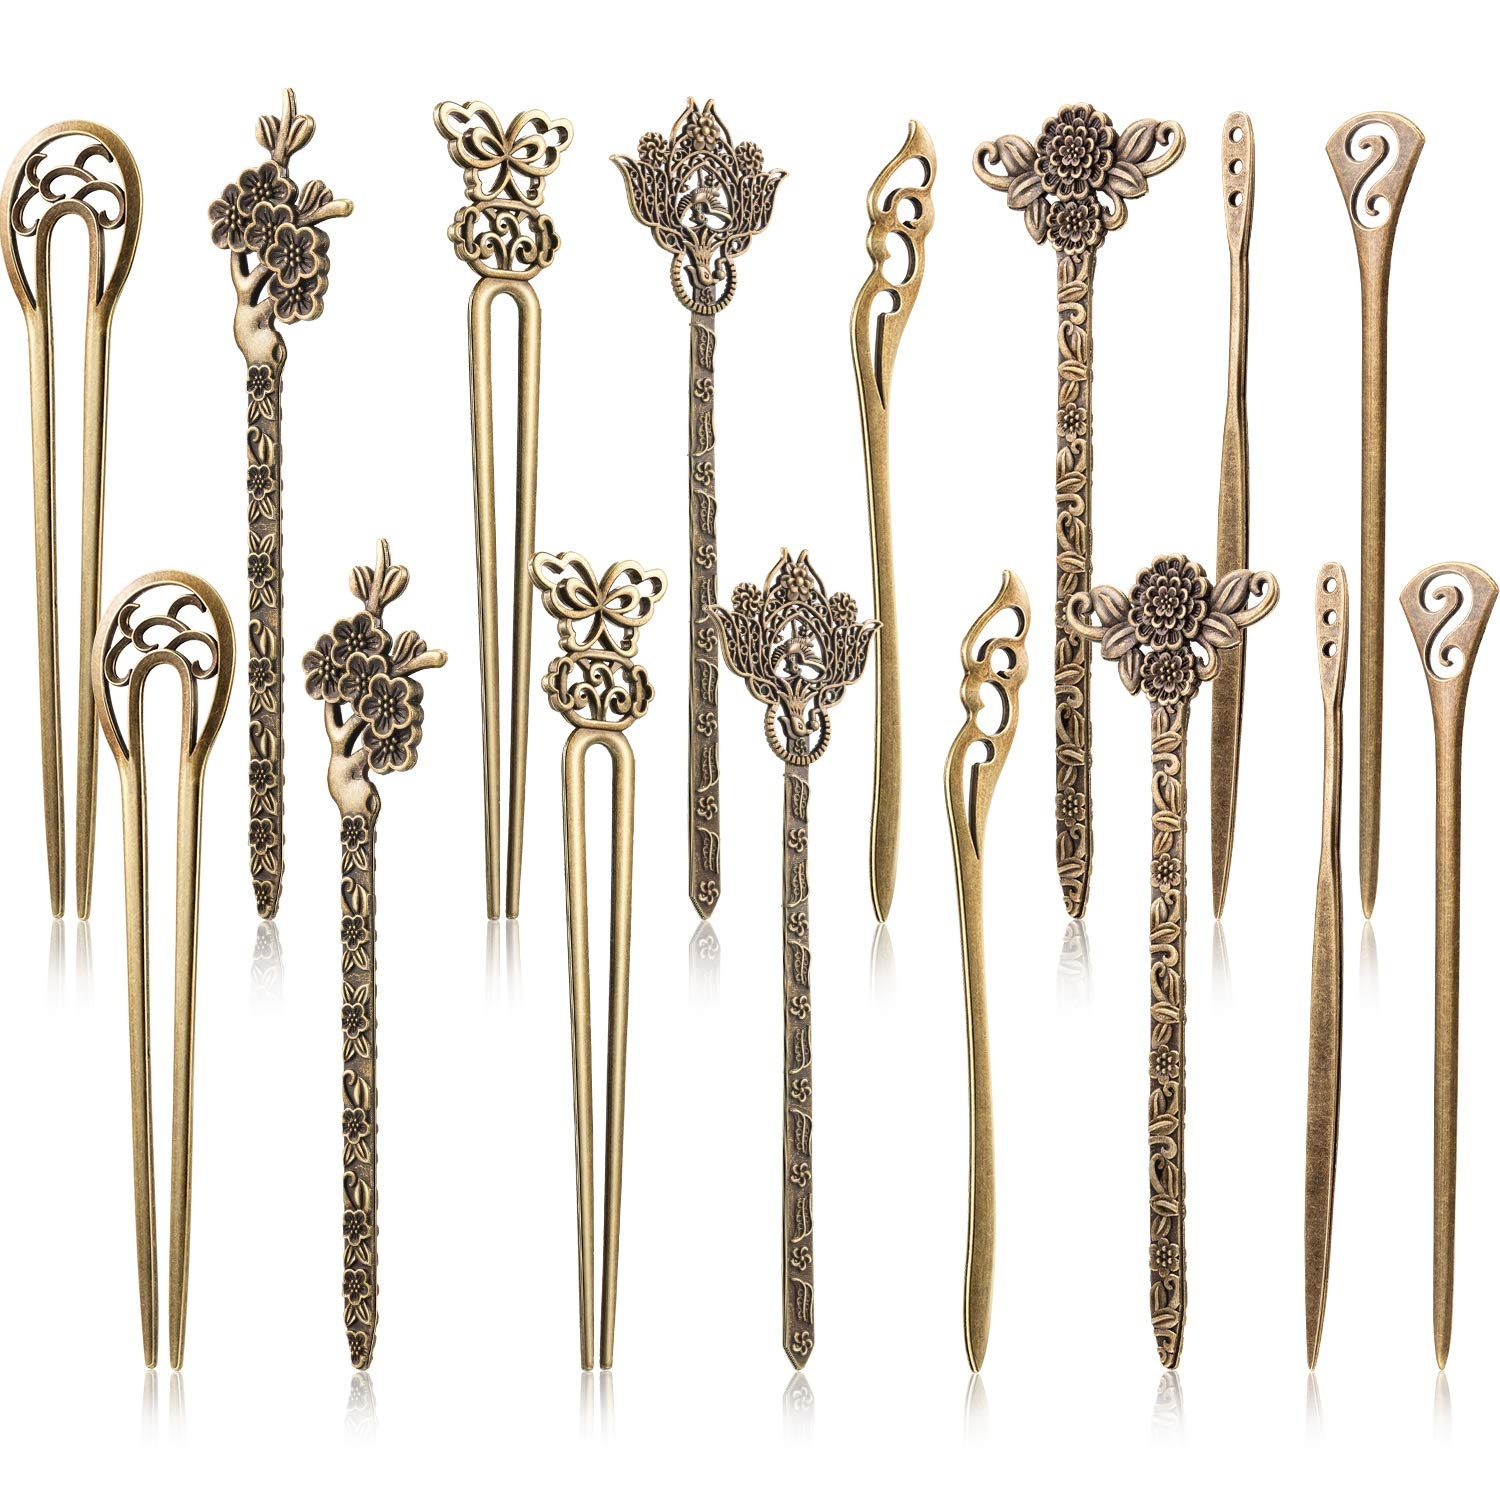 16 Pieces Hair Sticks for Women Hair Pins Chinese Hair Chopsticks Retro Vintage Decorative by Yaomiao